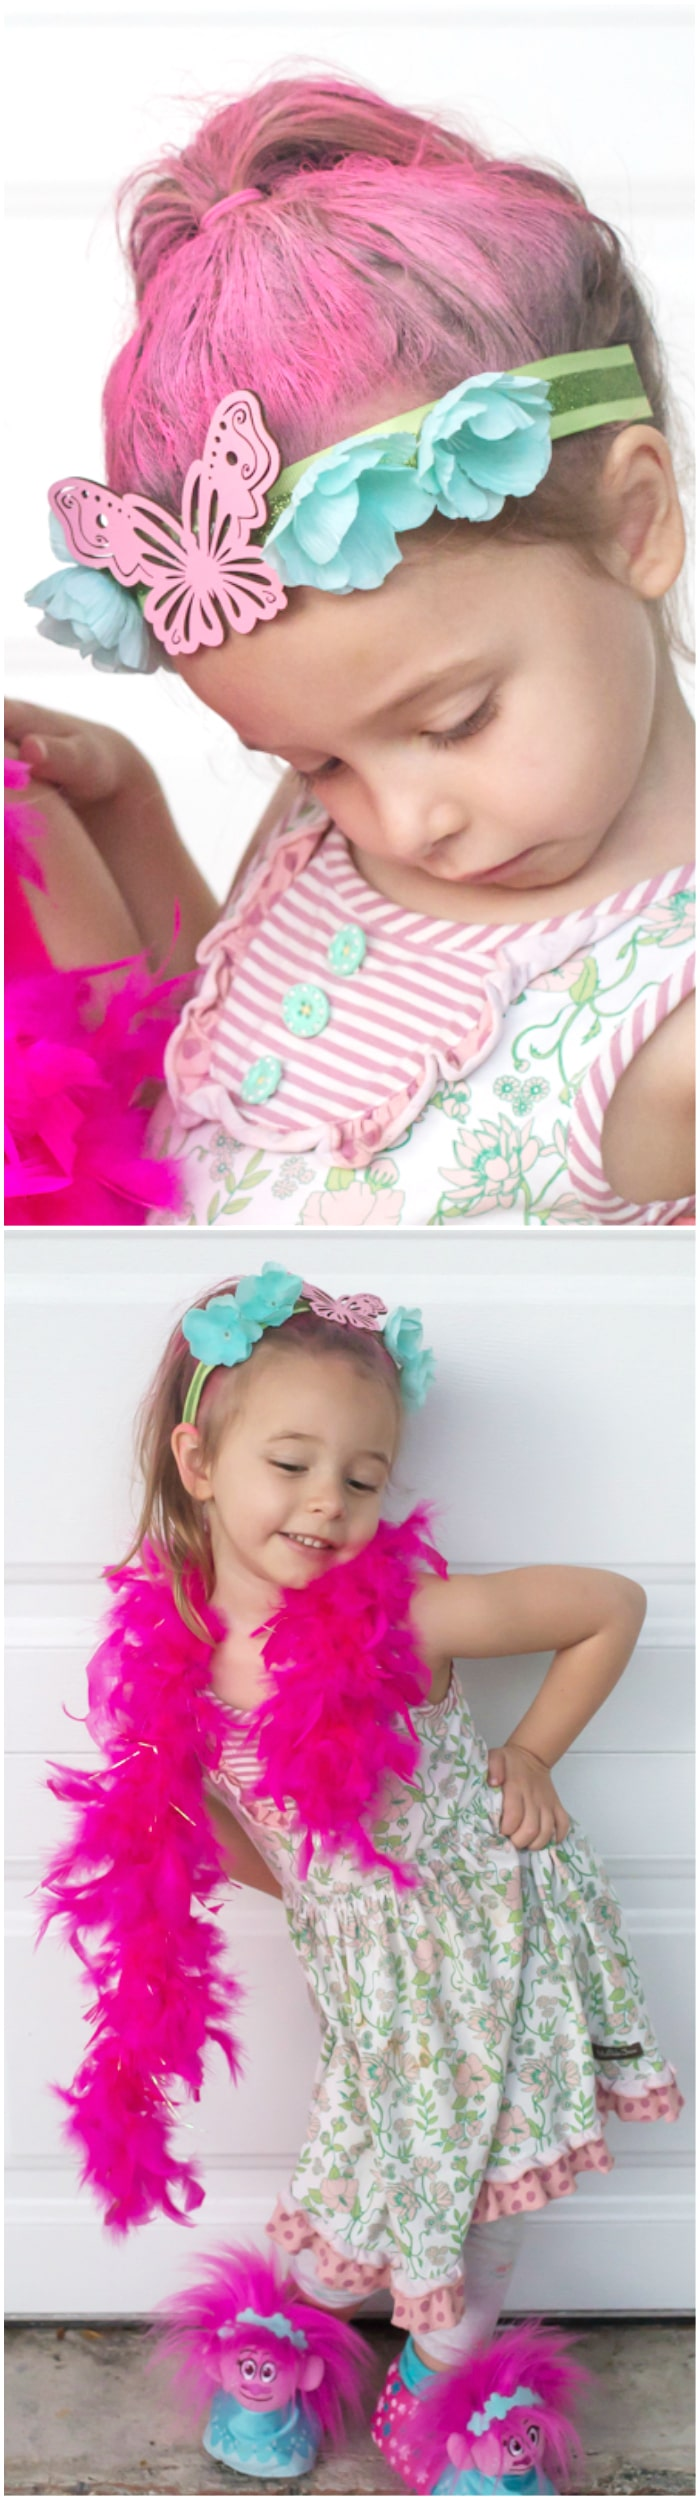 DreamWorks Trolls Party Edition - Princess Poppy Inspired DIY Headbands with Party Plan and recipes